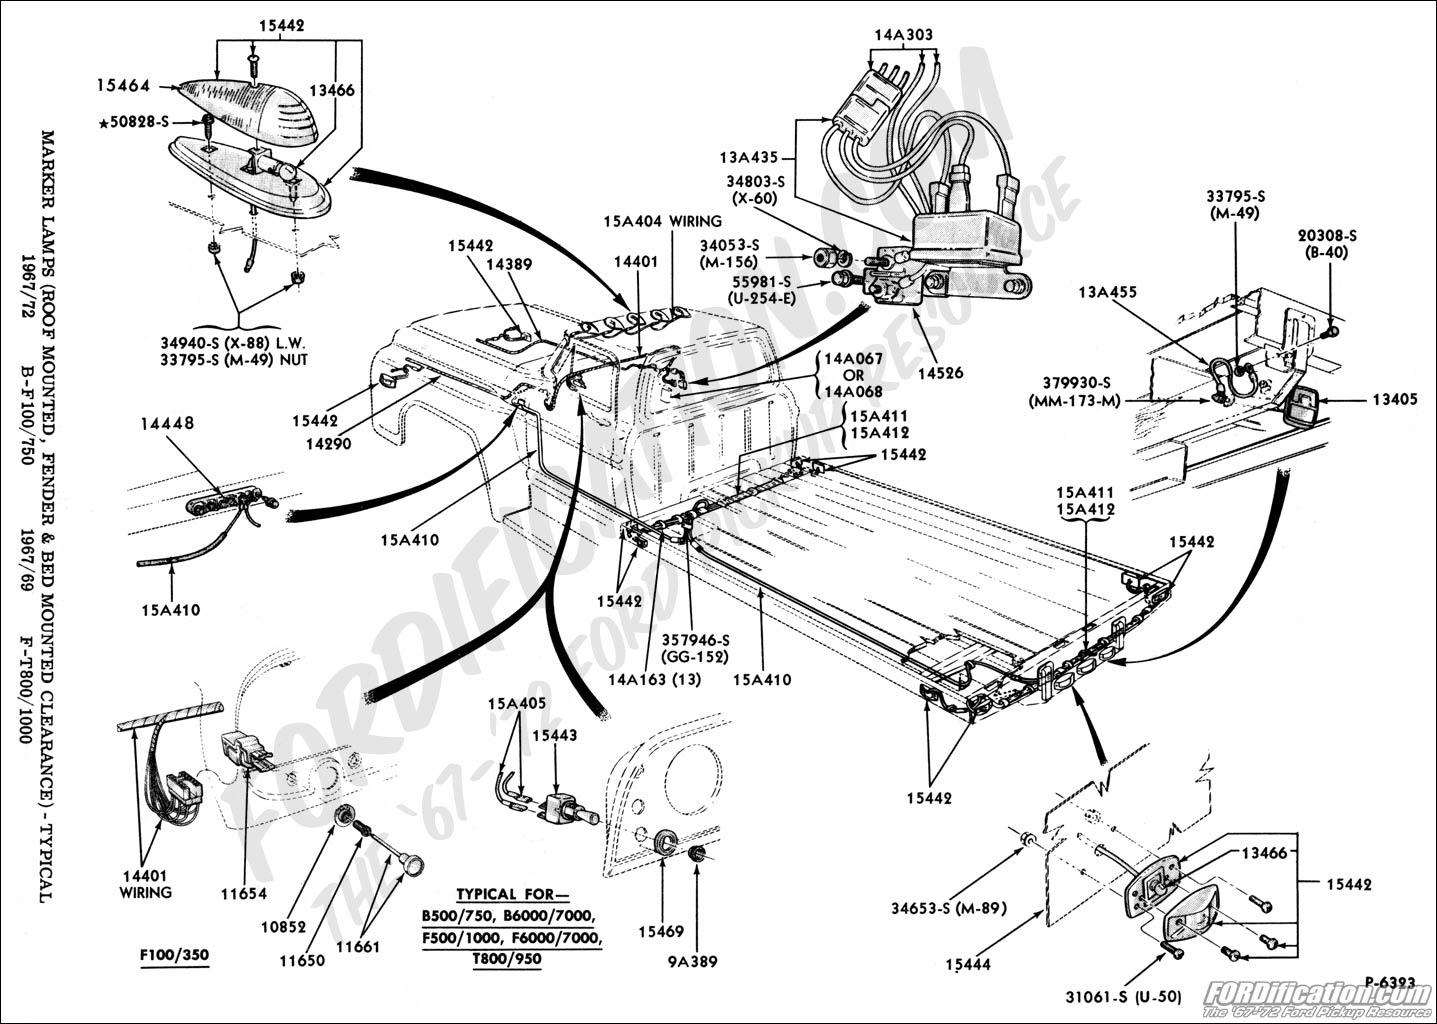 1969 Impala Wiring Diagram Will Be A Thing Au Falcon Bem Ford Truck Technical Drawings And Schematics Section I 1967 Chevrolet Engine